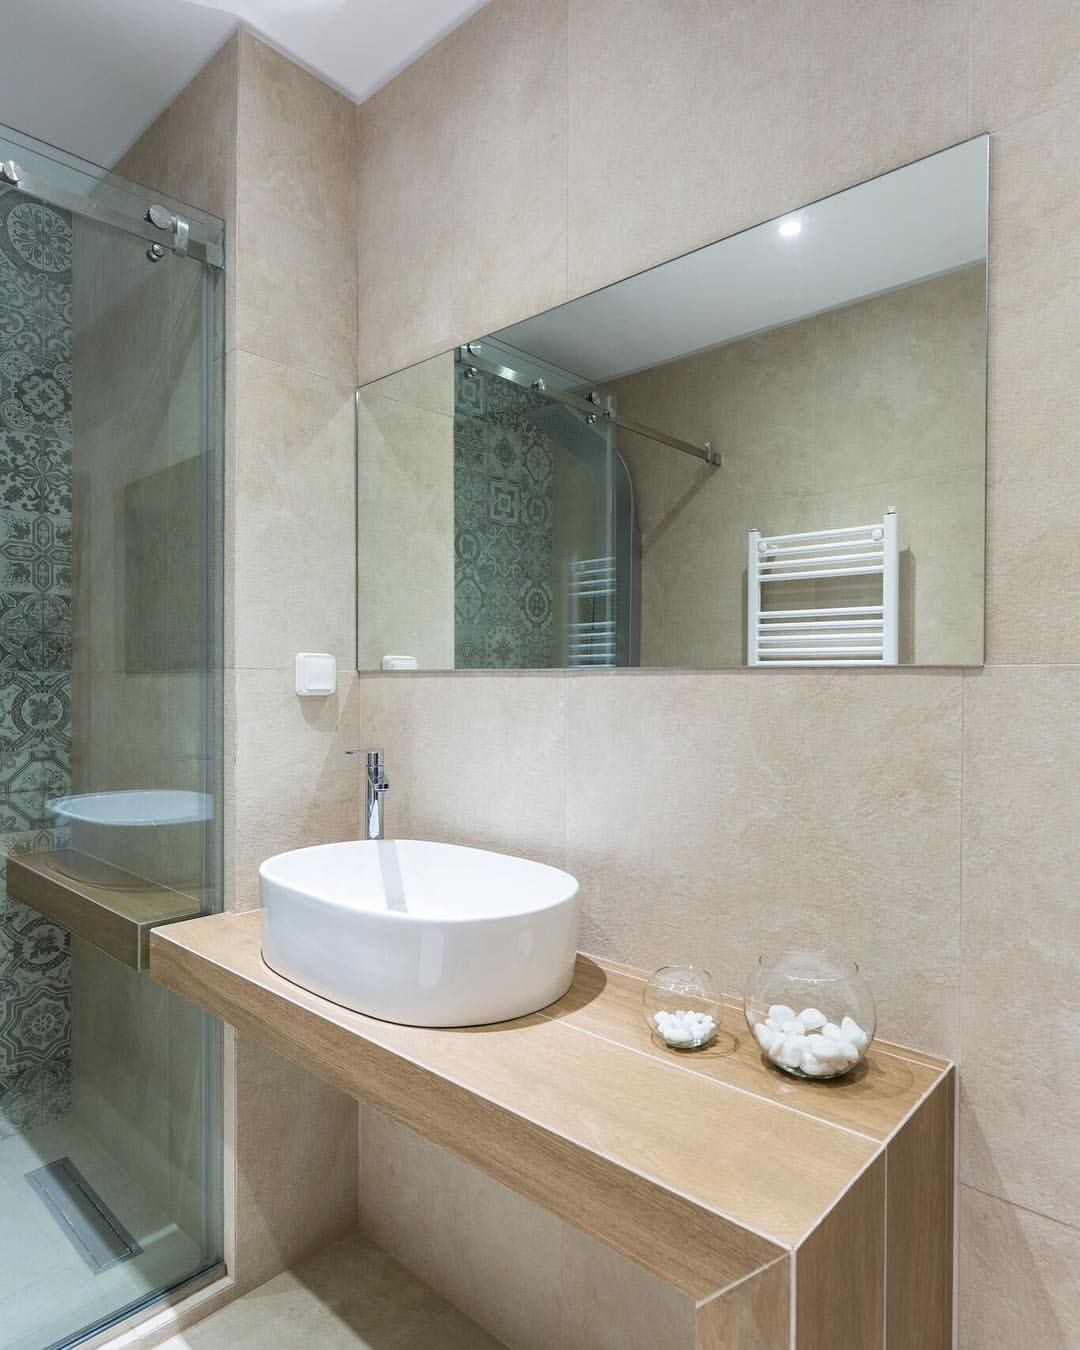 Kleine ensuite badezimmerdesignideen stone tile bathroom cement tiles  bathroom  pinterest  stone